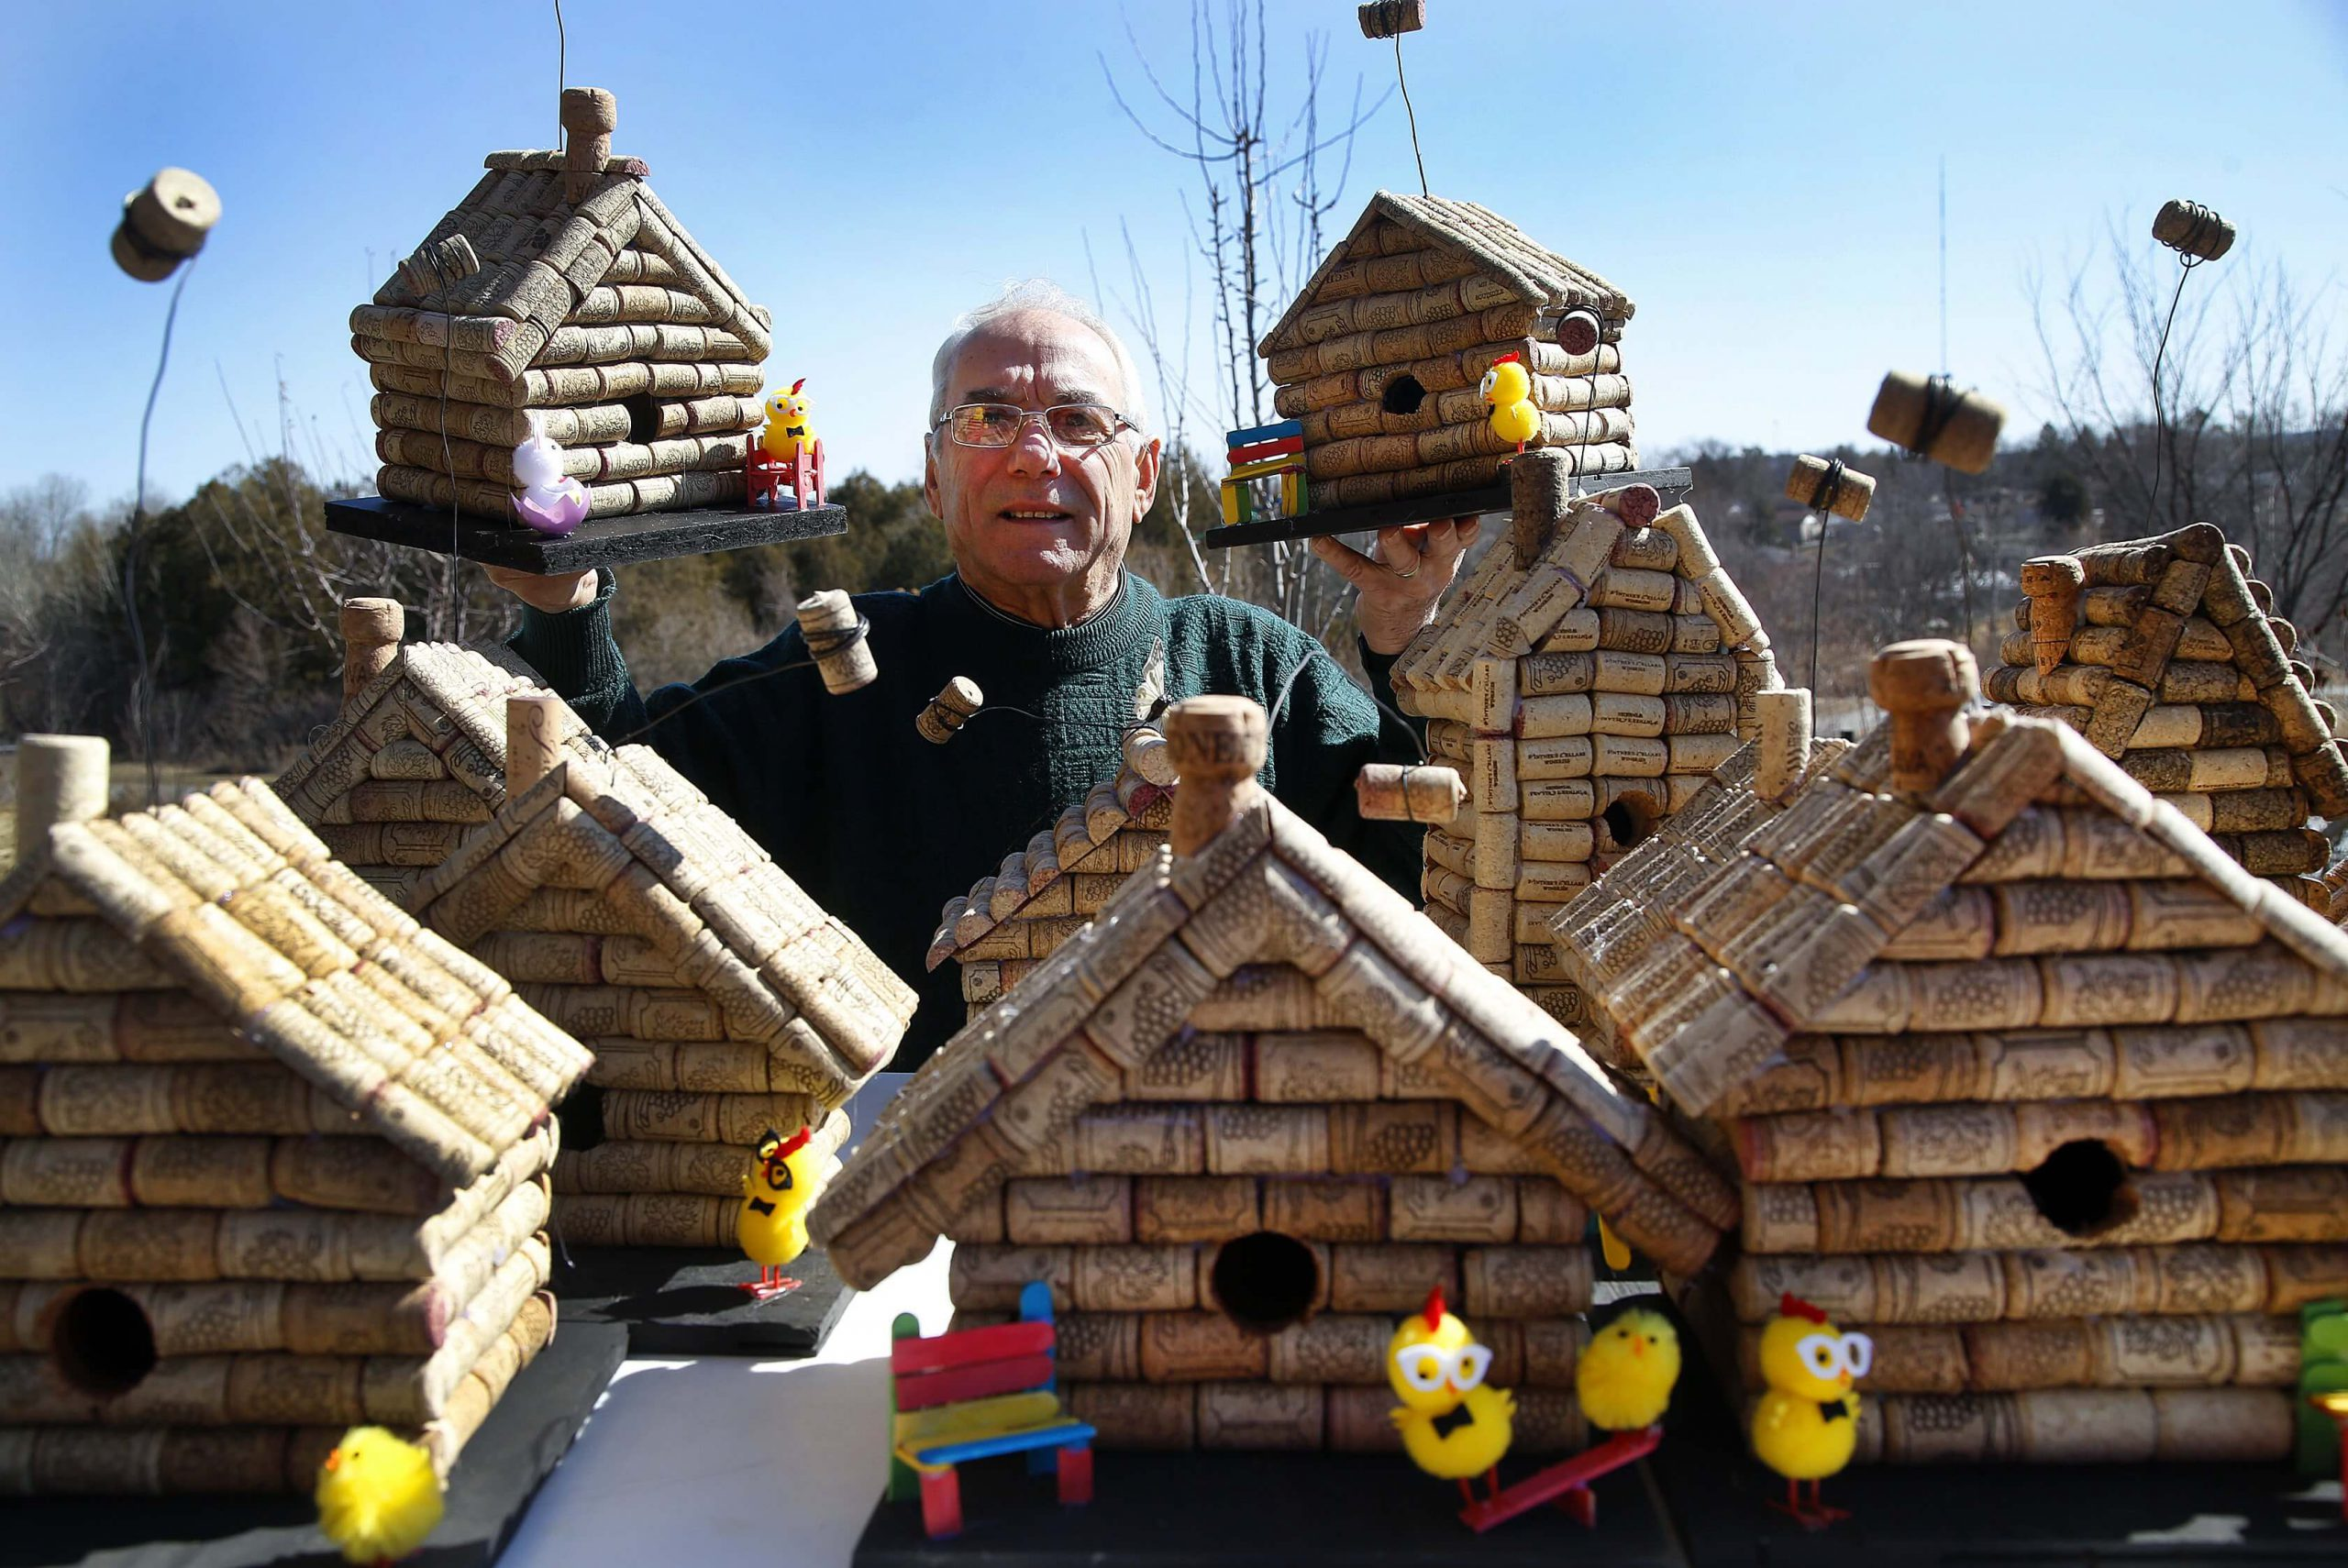 A man stands behind a table of birdhouses holding two birdhouses in the air